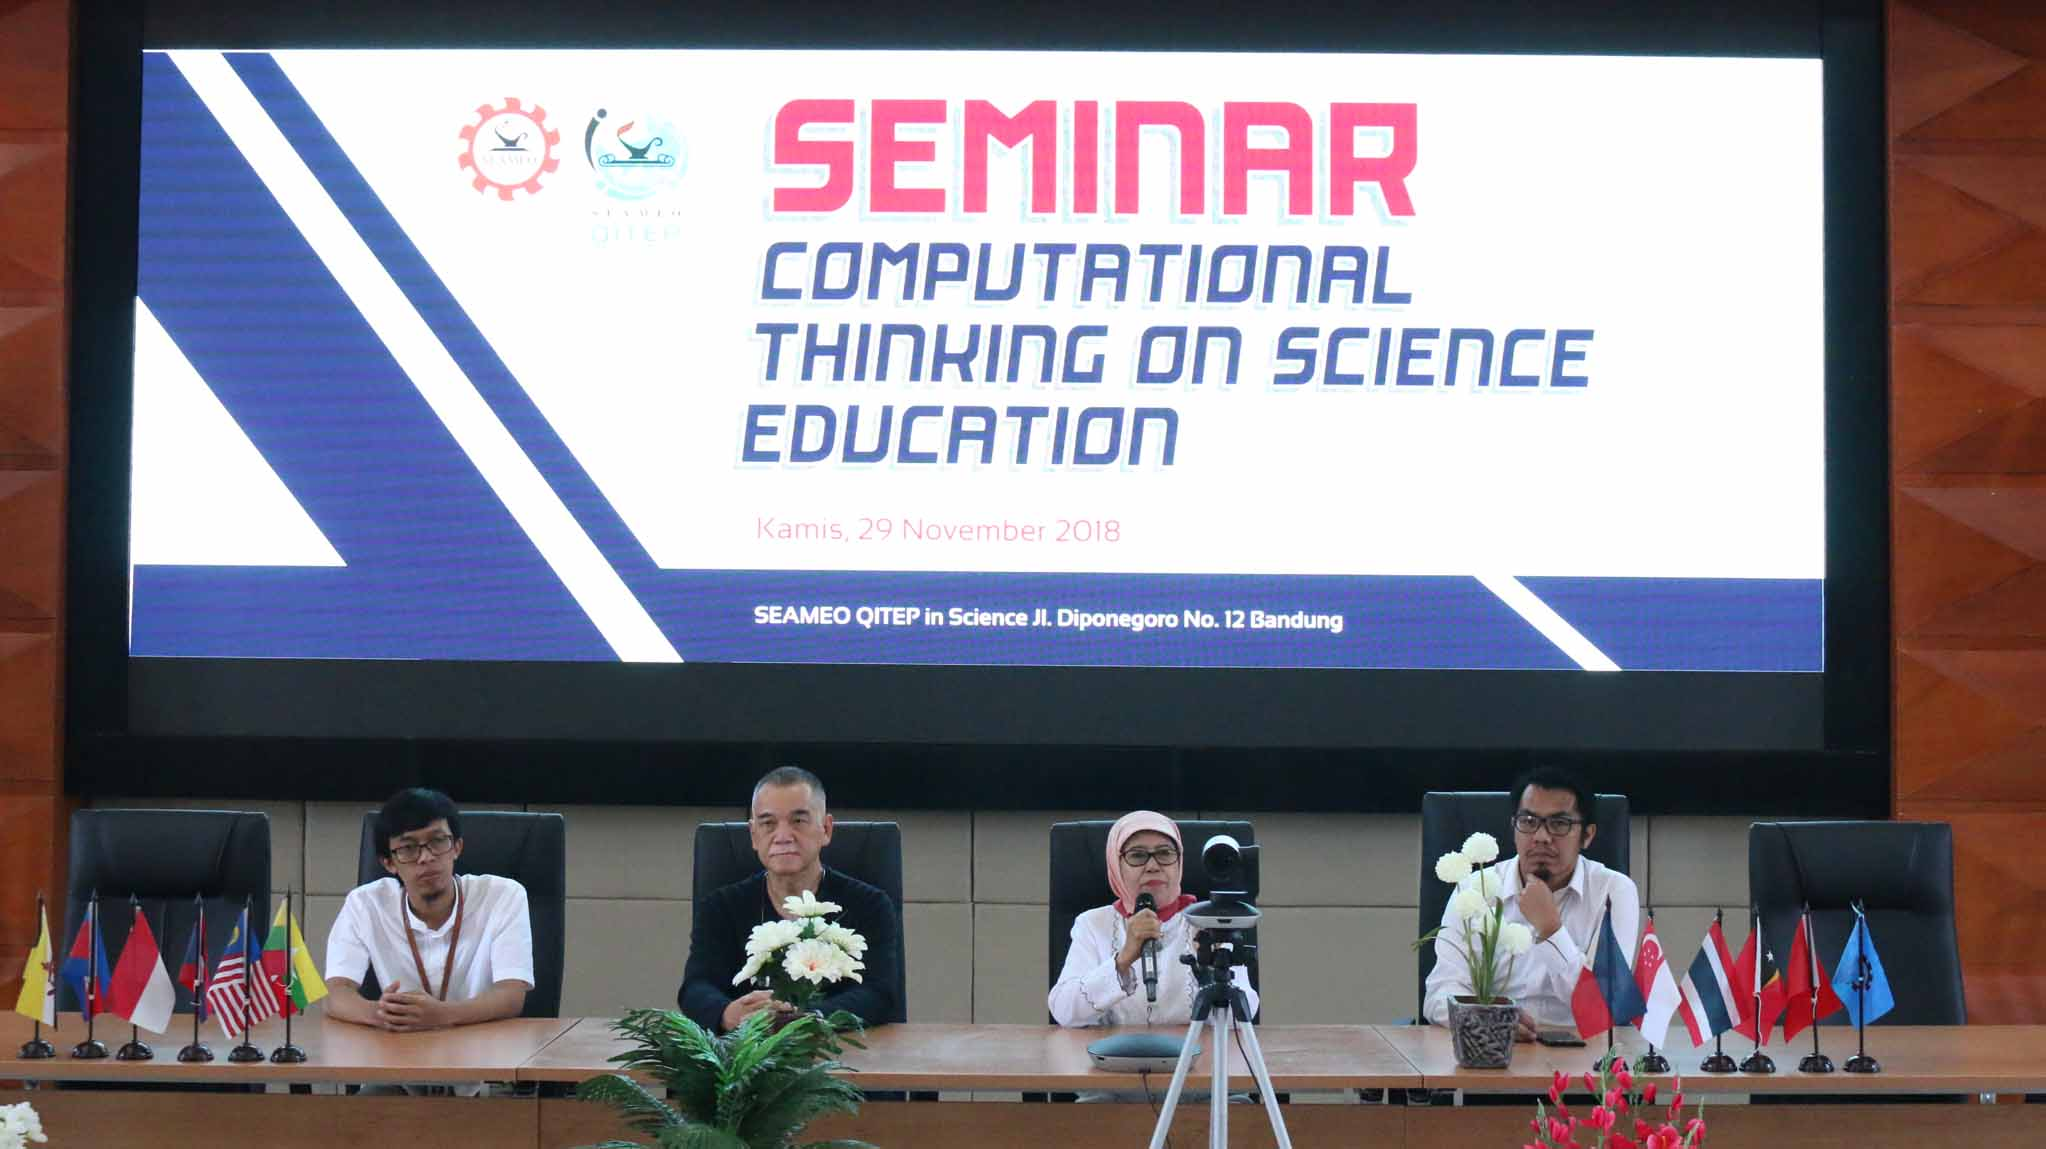 SEMINAR ON COMPUTATIONAL THINKING ON SCIENCE EDUCATION